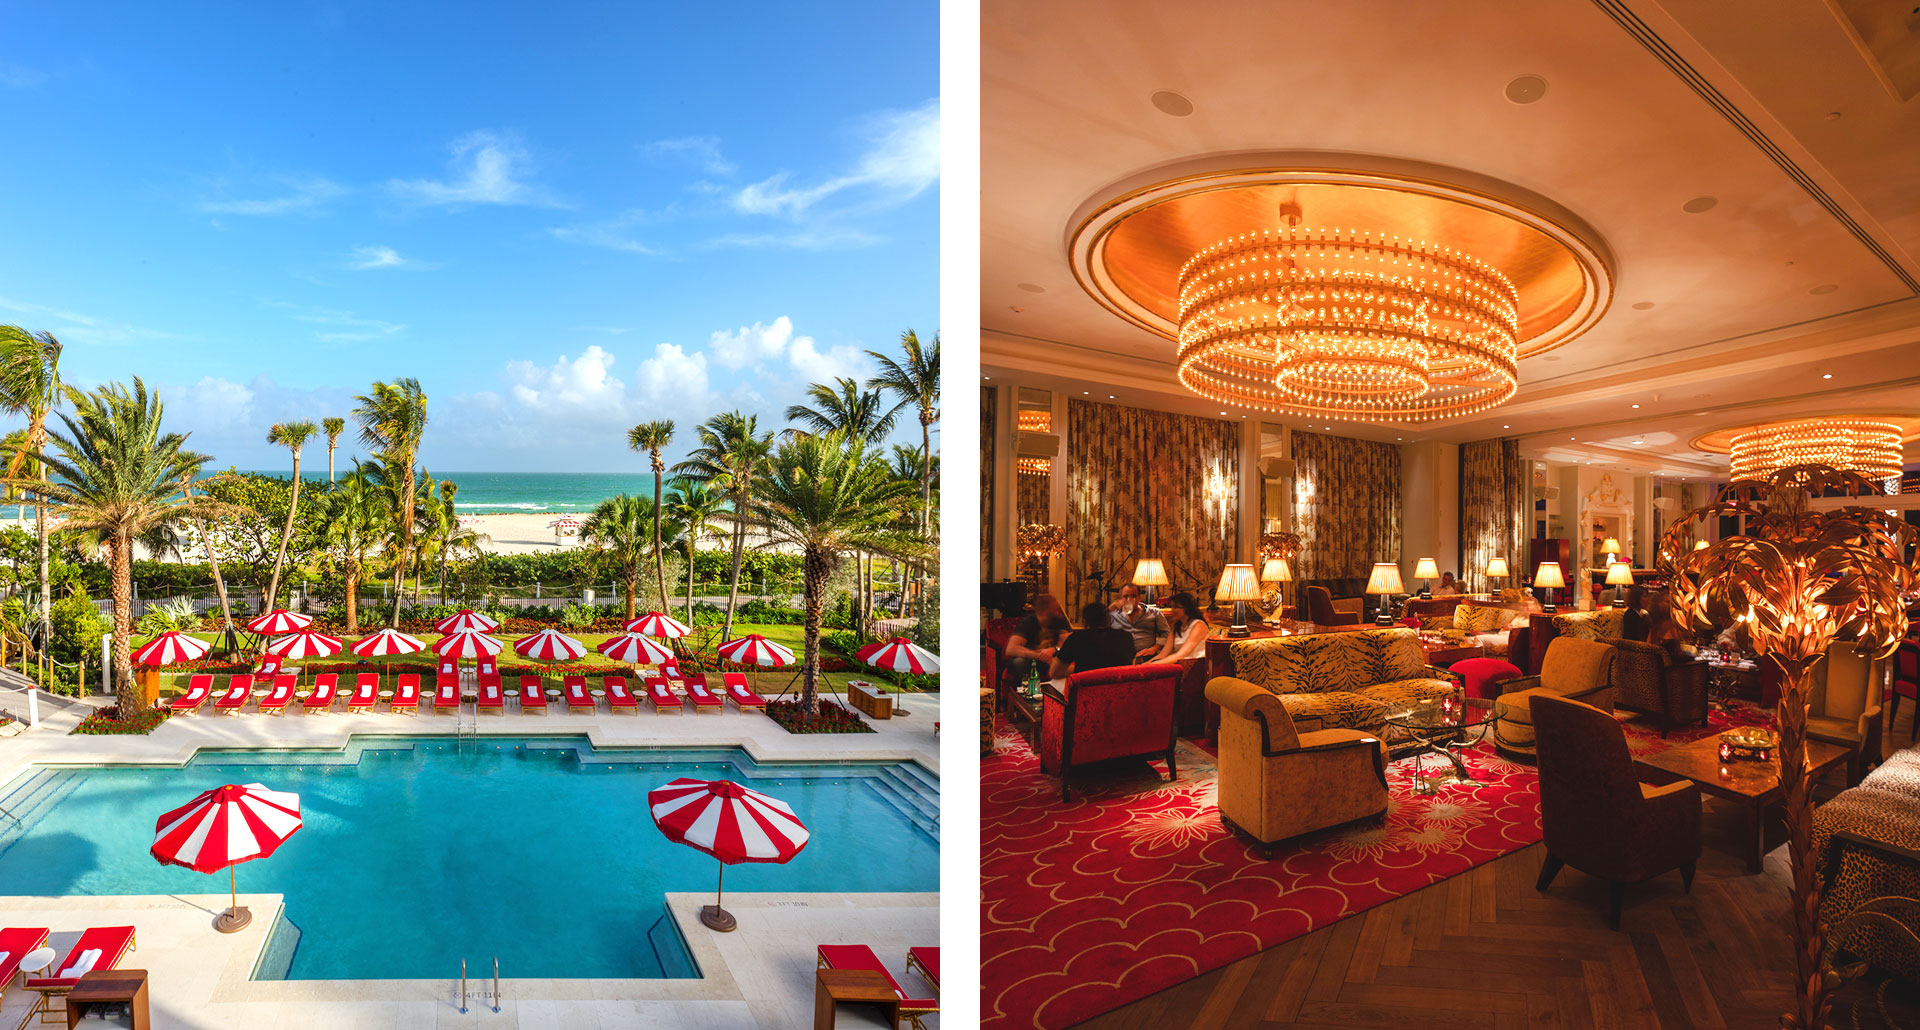 Miami boutique hotel - Faena Hotel Miami Beach